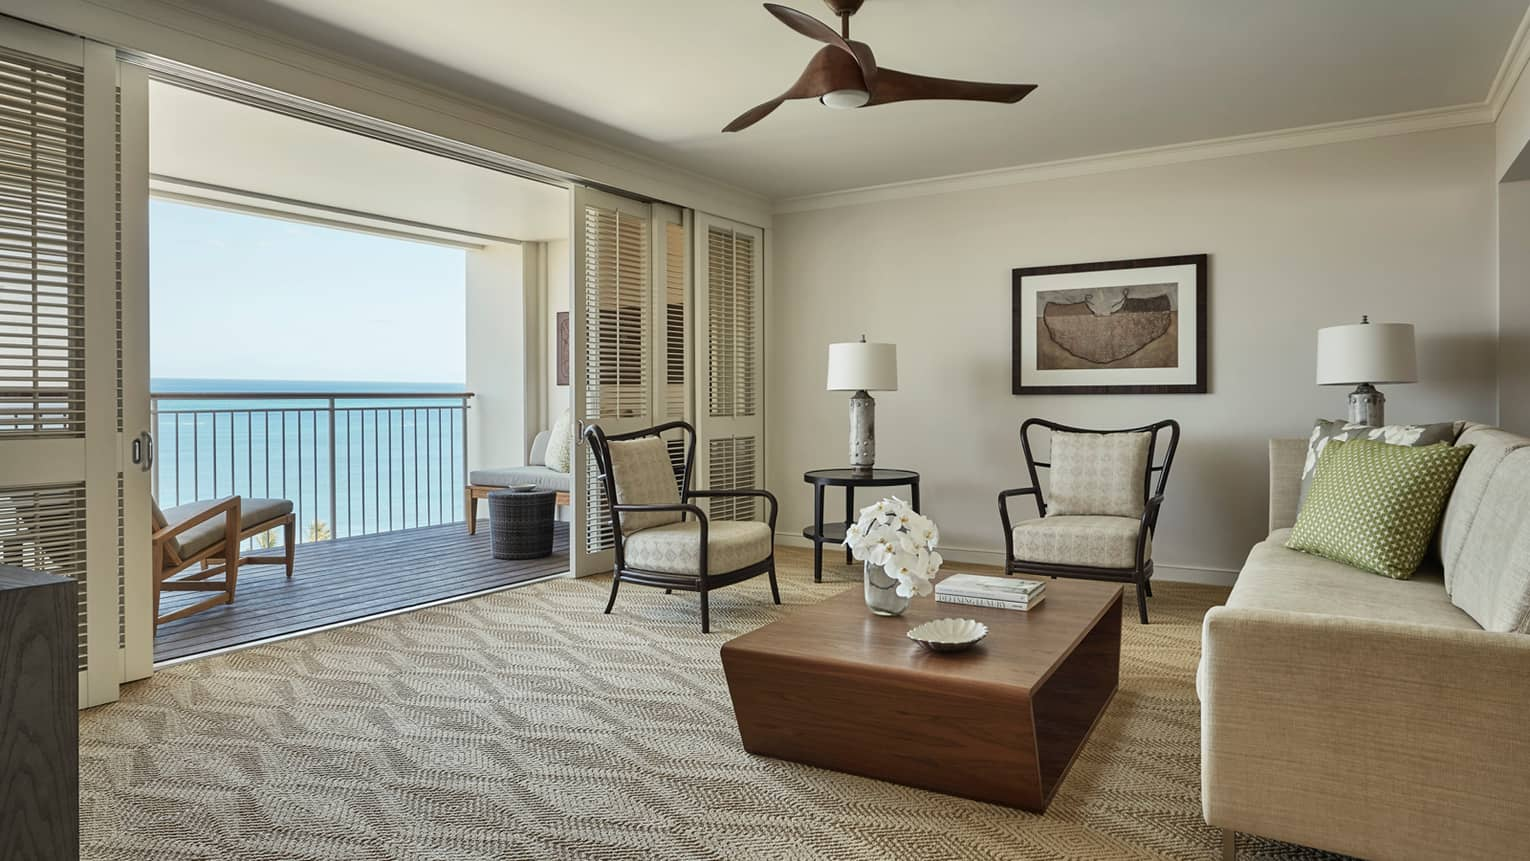 Oceanfront Suite chairs, wood table, sofa facing open wall, sliding shutters, balcony